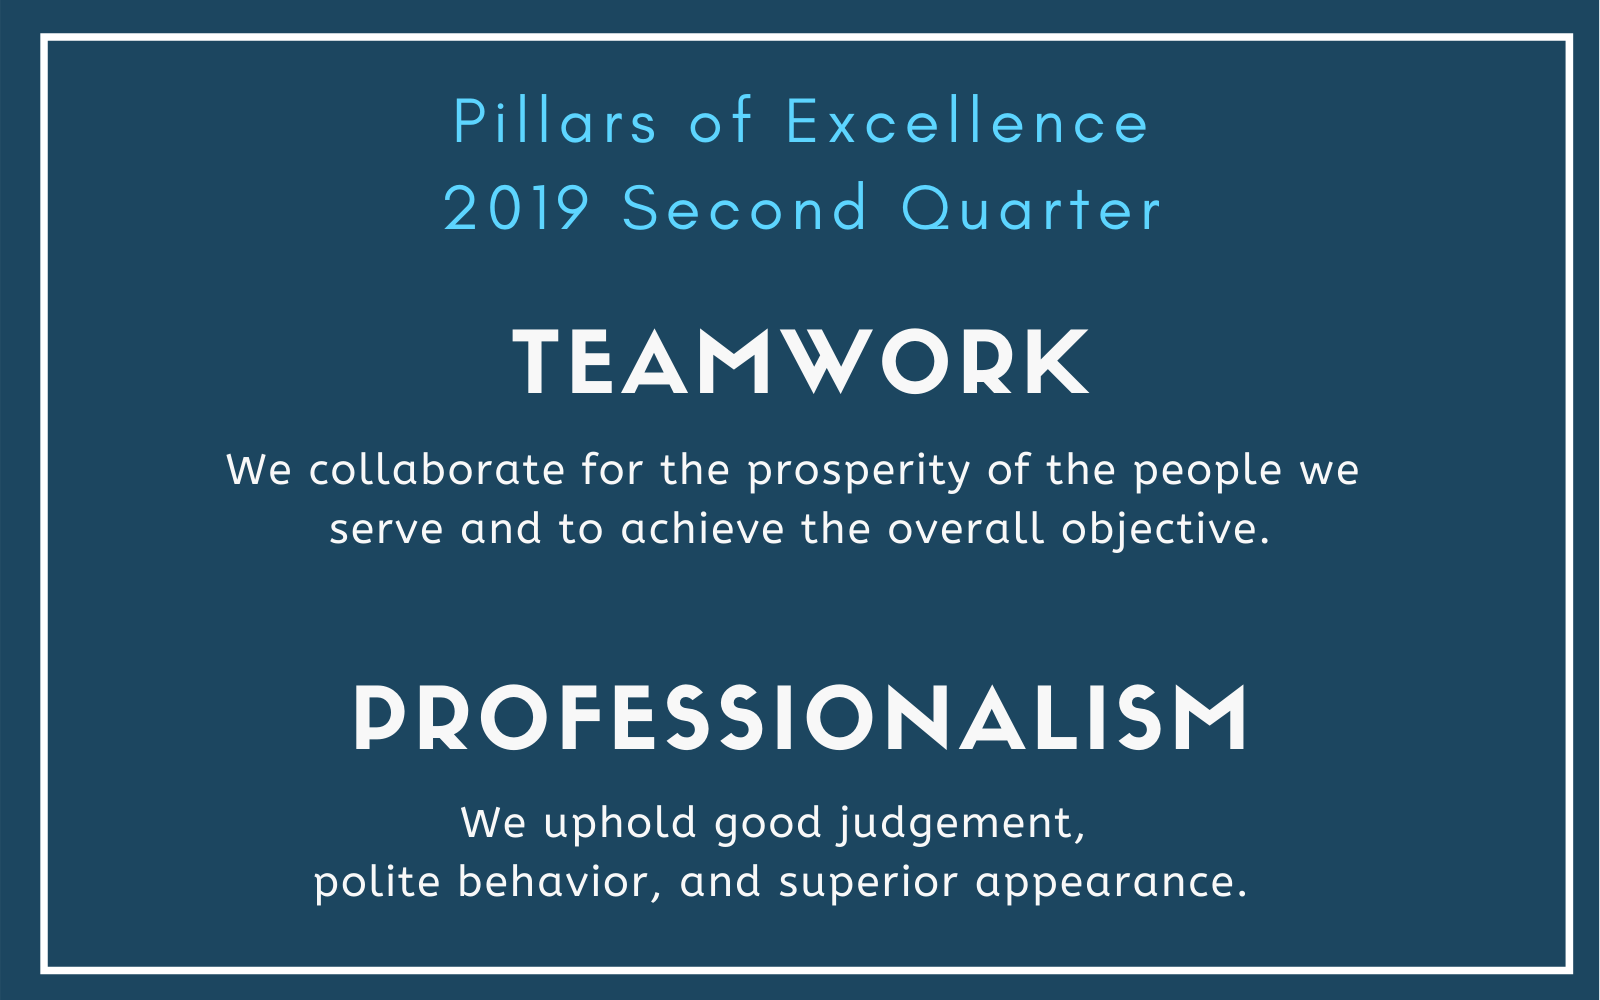 NALS Pillars of Excellence Second Quarter